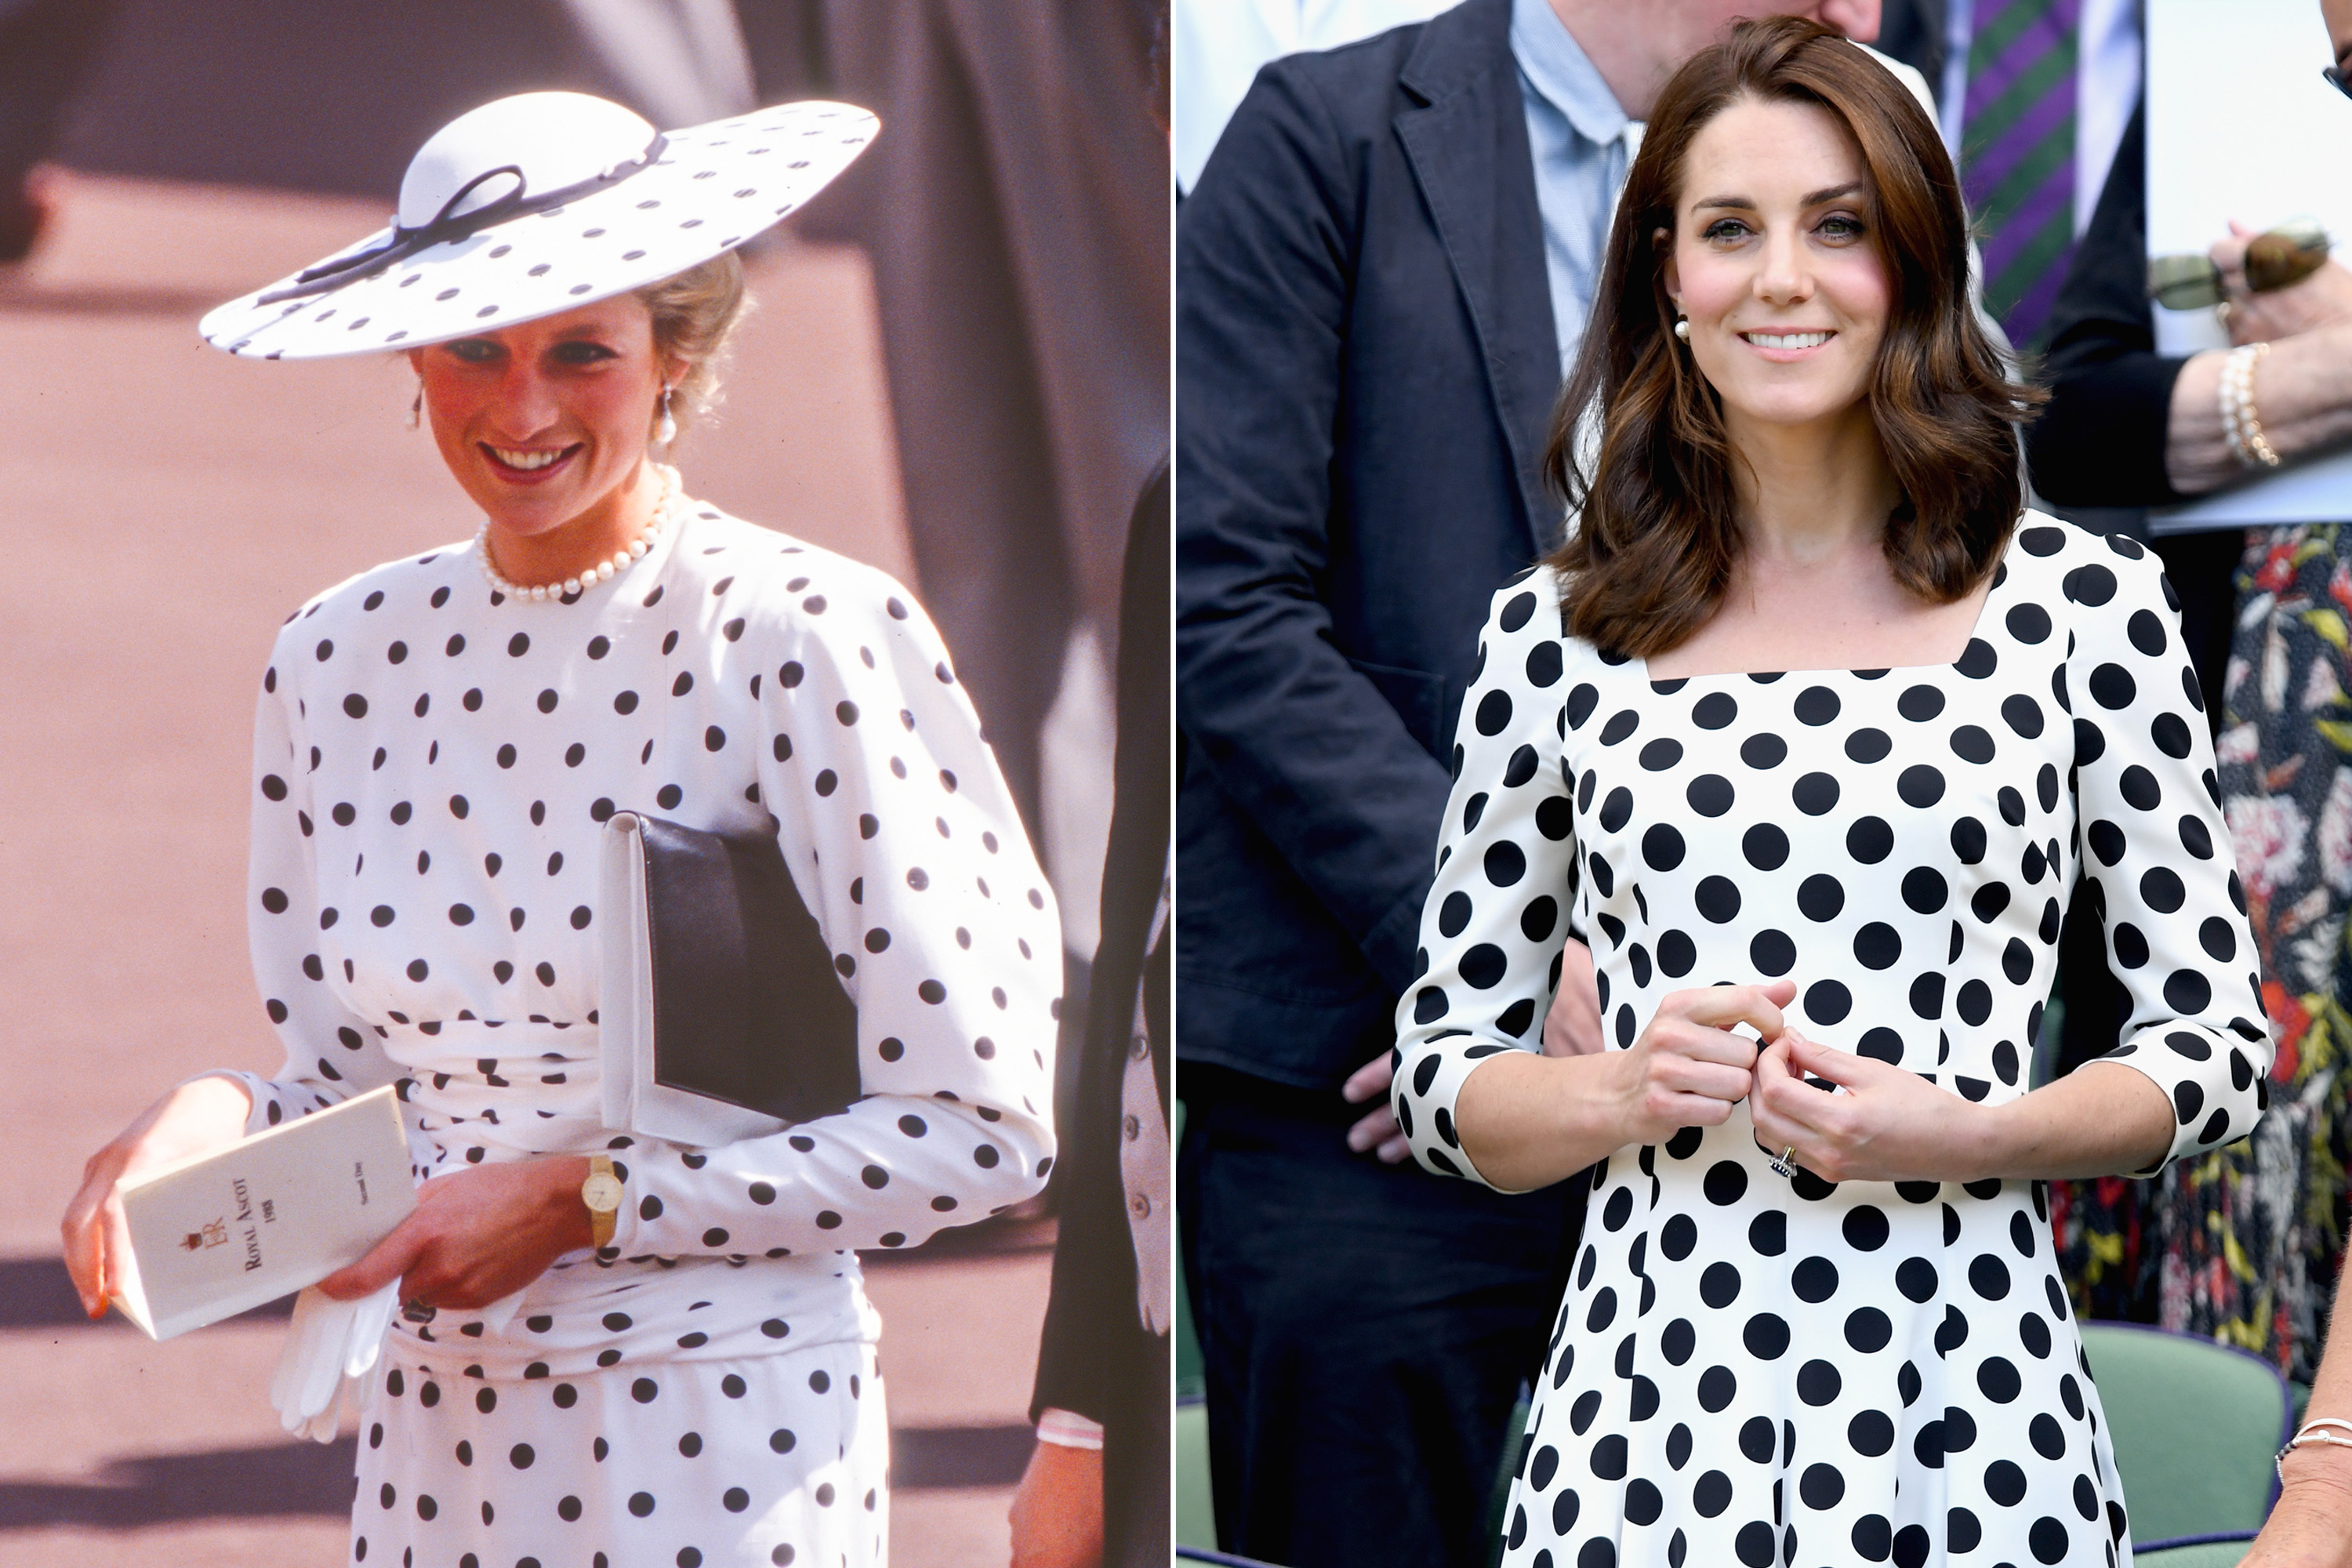 Both Kate and Diana knew that a polka dot print could give a playful touch to an otherwise conservative outfit.